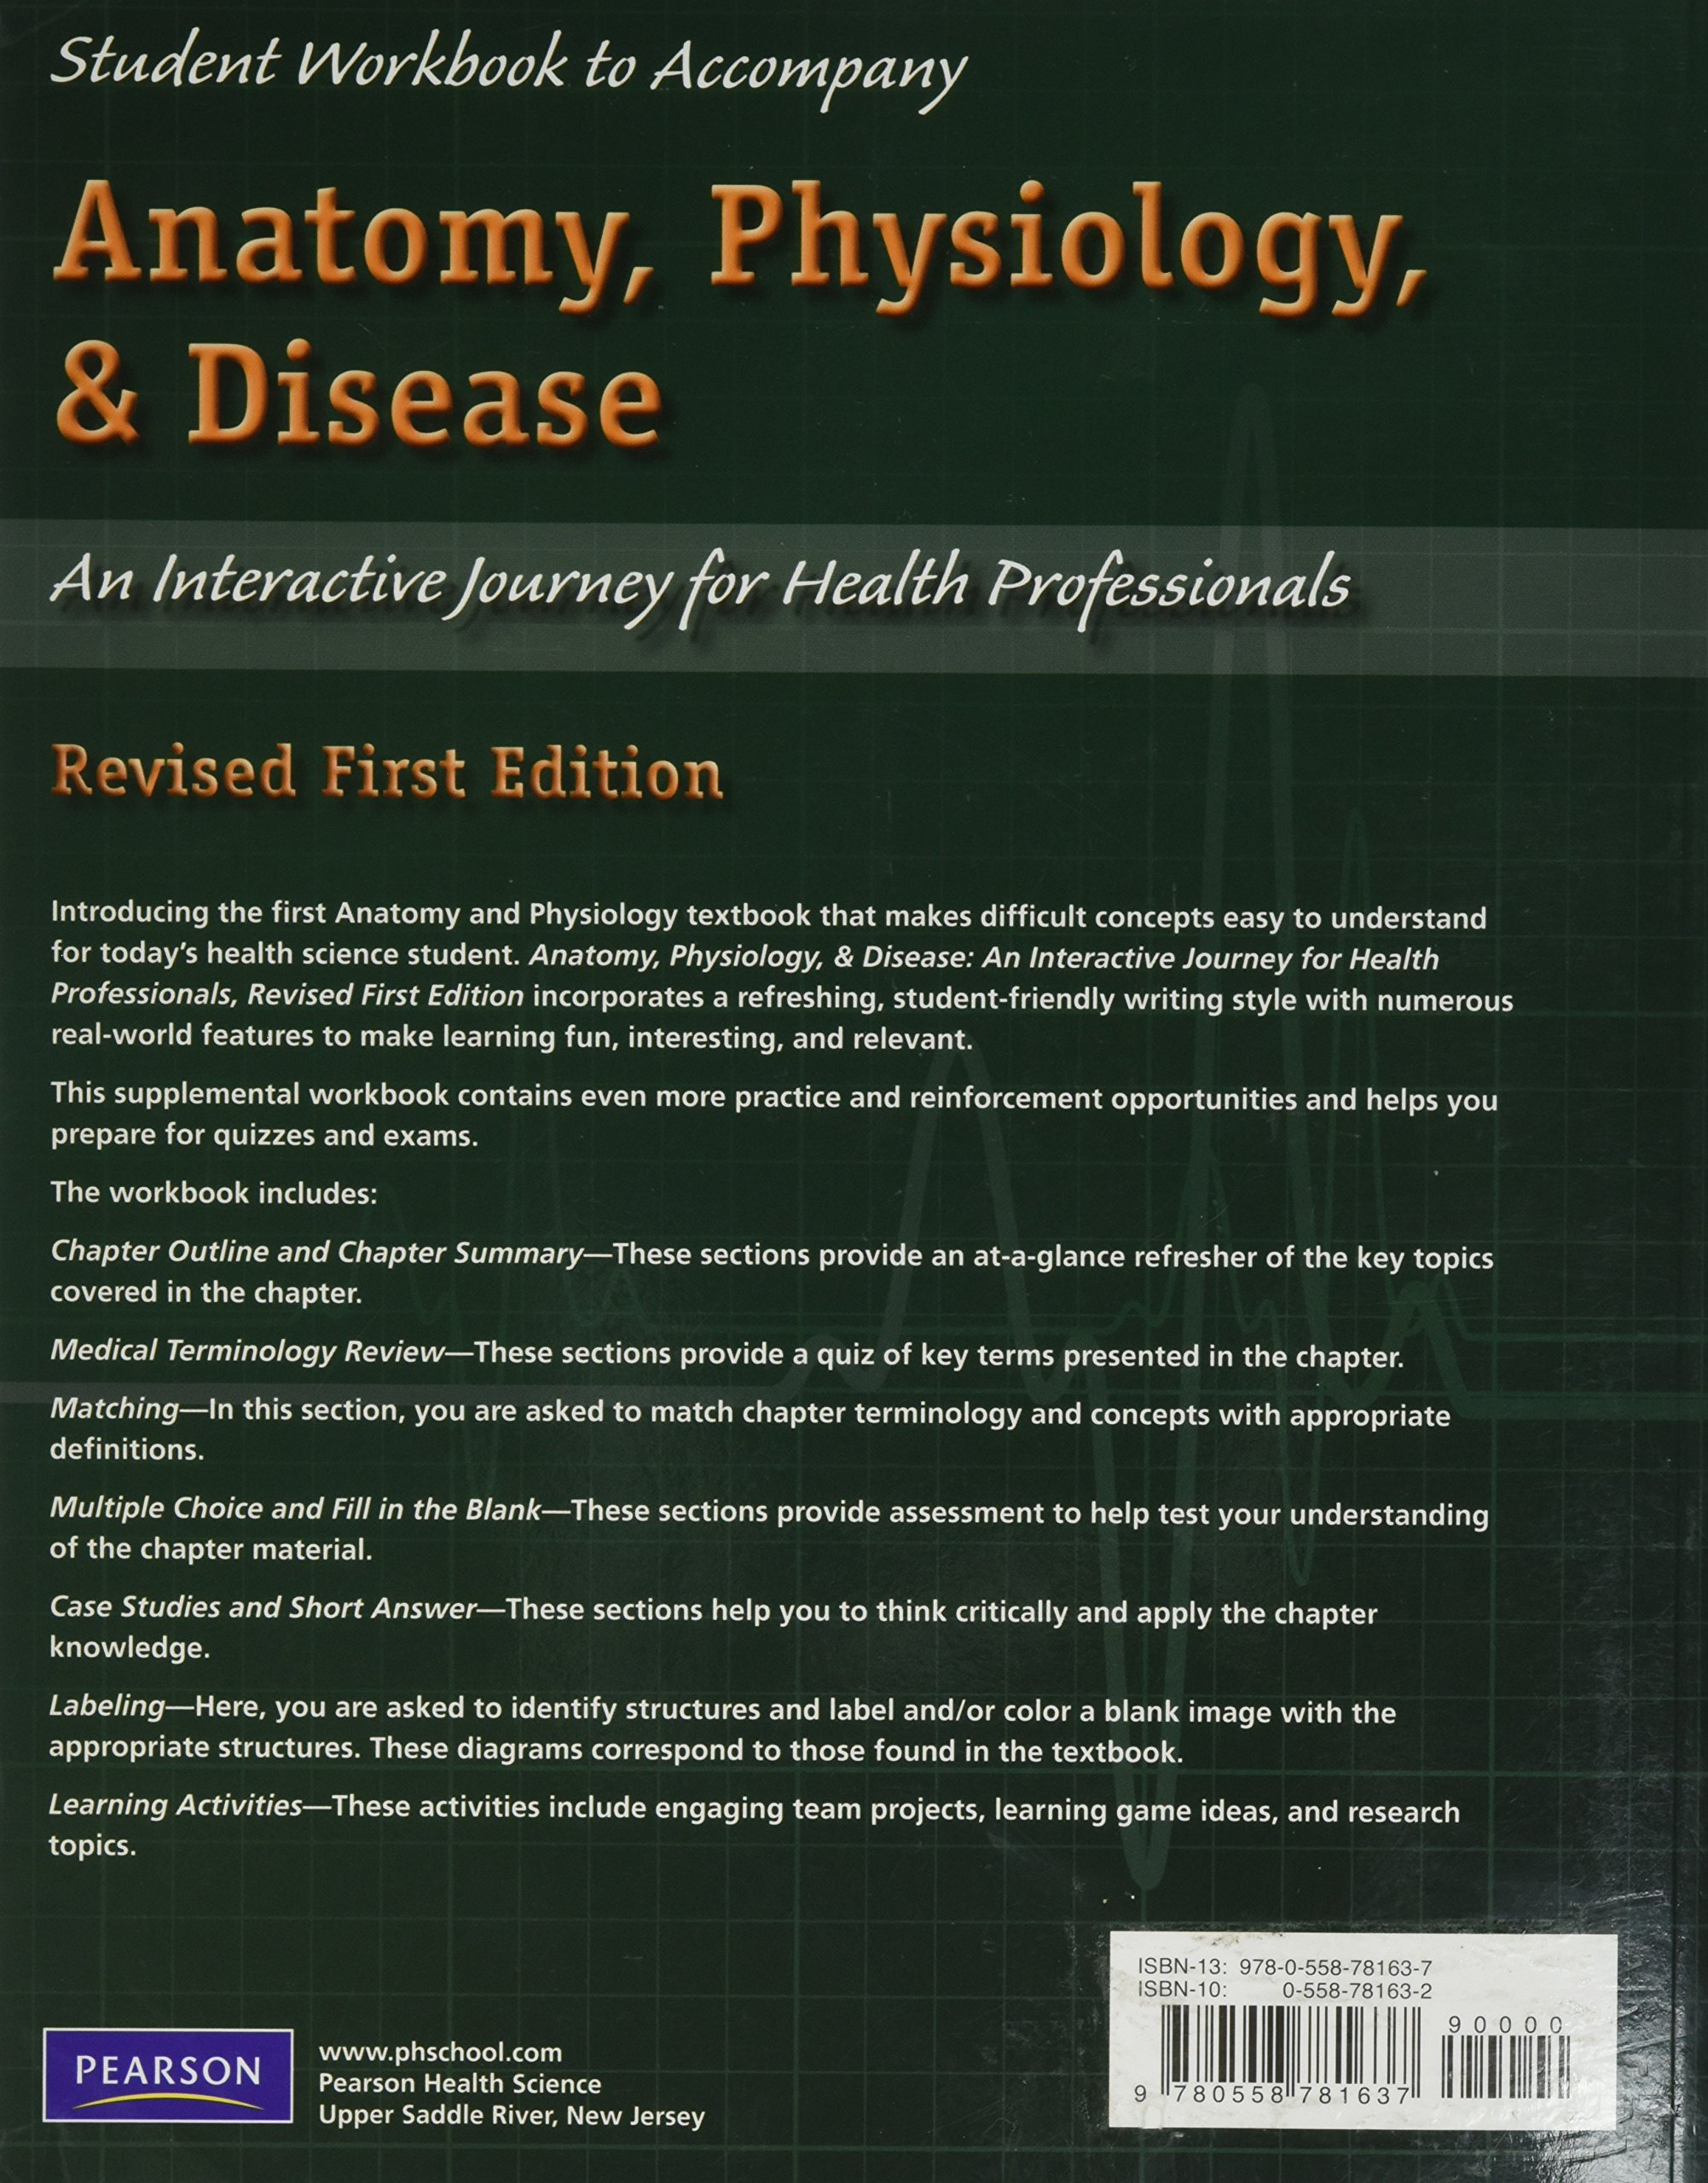 ANATOMY, PHYSIOLOGY, & DISEASE- AN INTERACTIVE JOURNEY FOR HEALTH ...